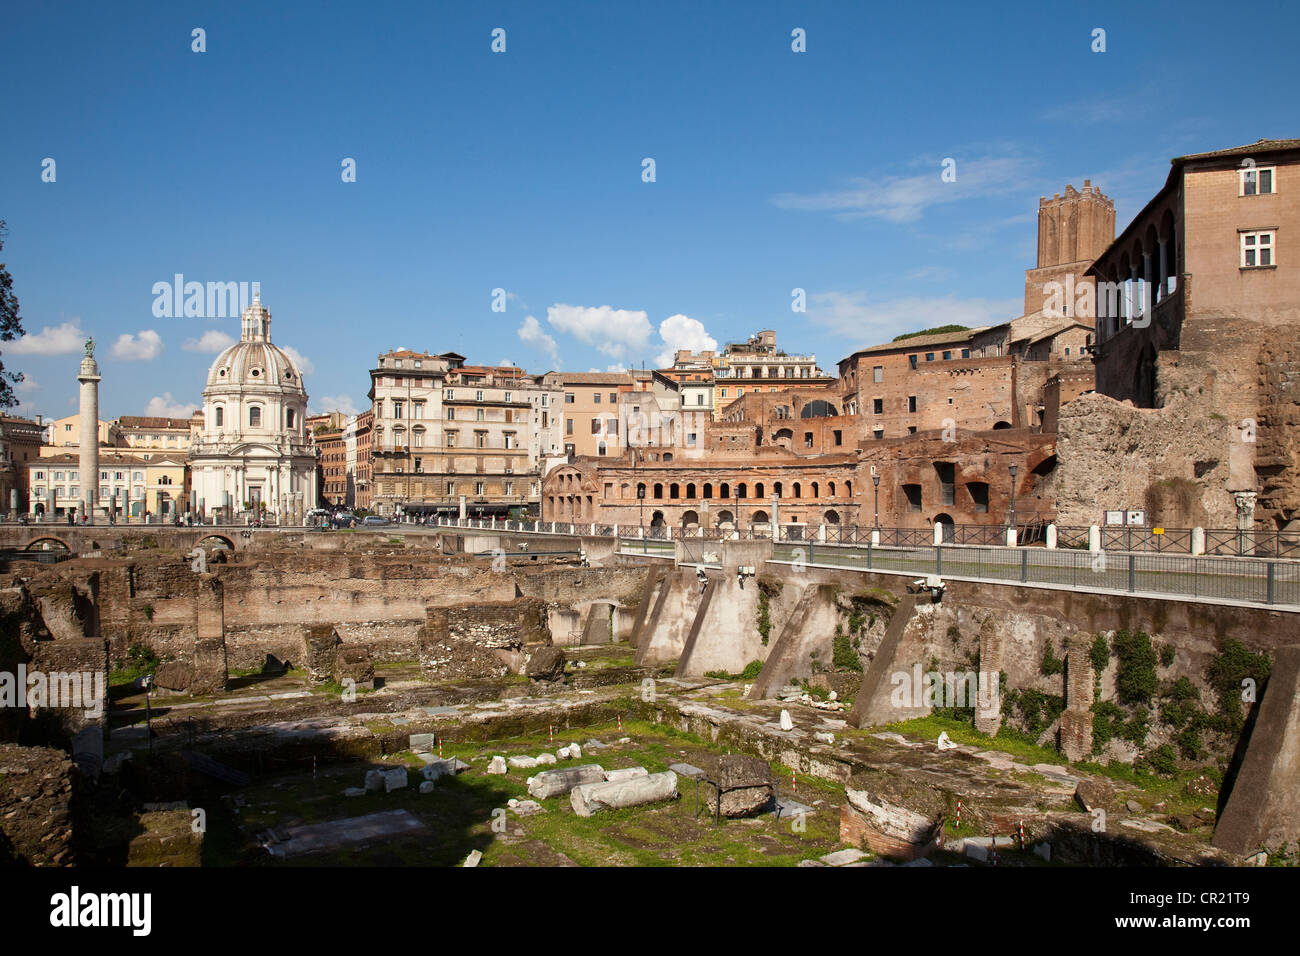 Ancient ruins in Rome - Stock Image